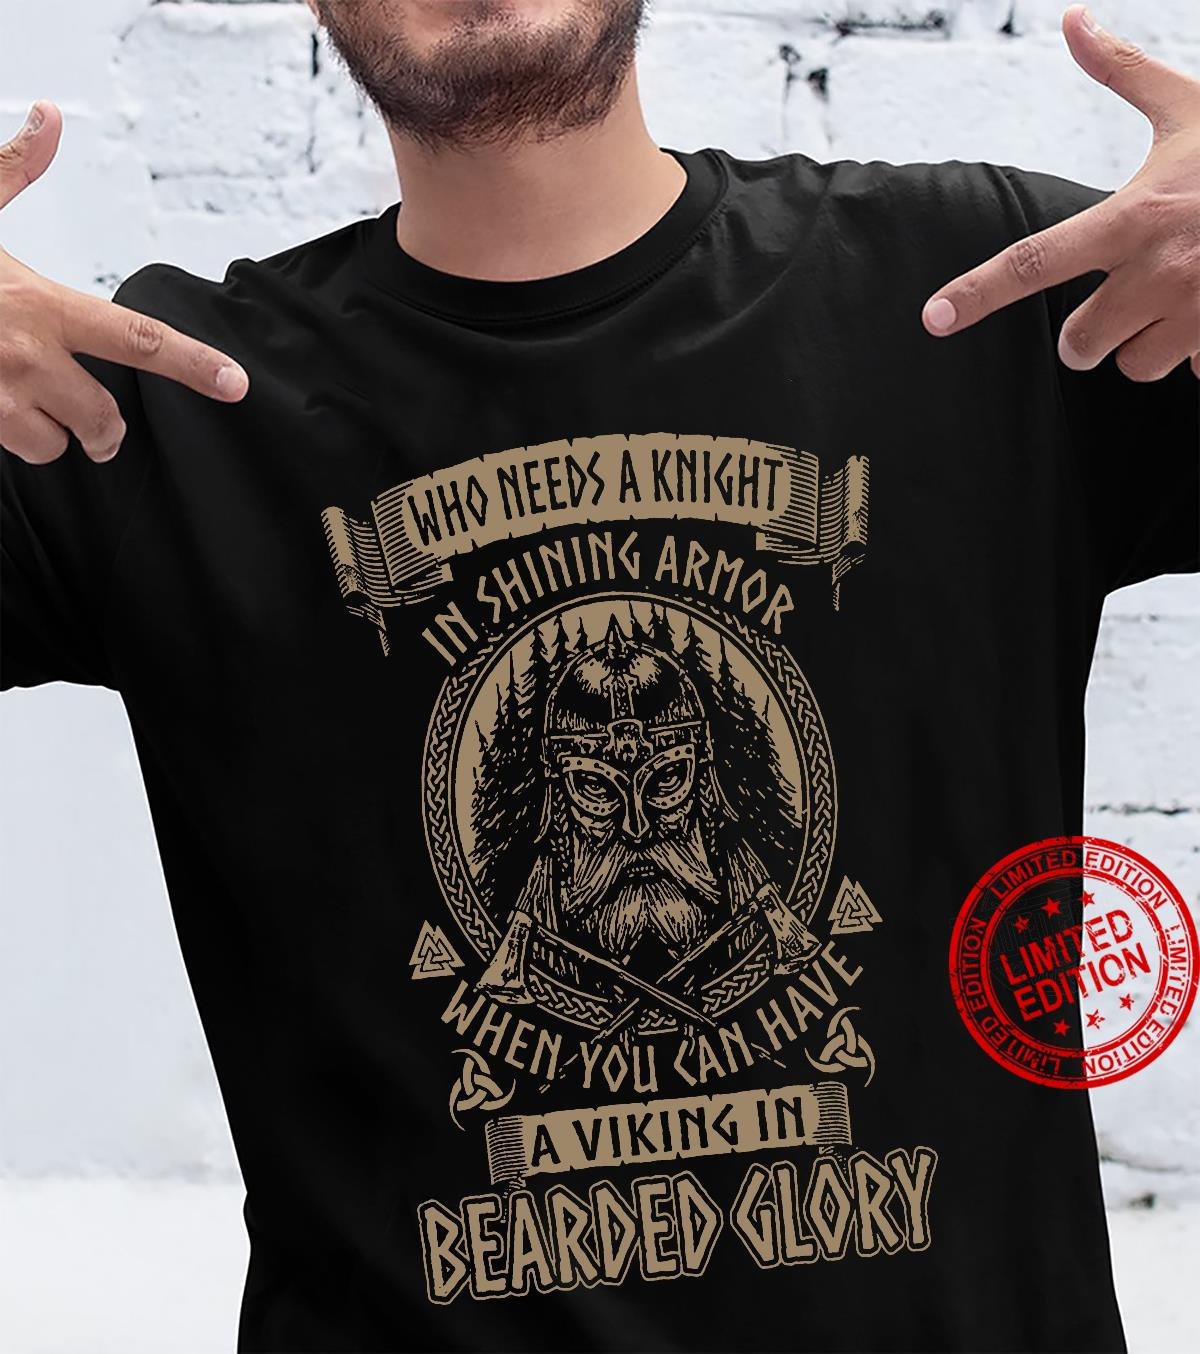 Who needs A Knight In Shining Armor When You Can Have A Viking In Bearded Glory Shirt